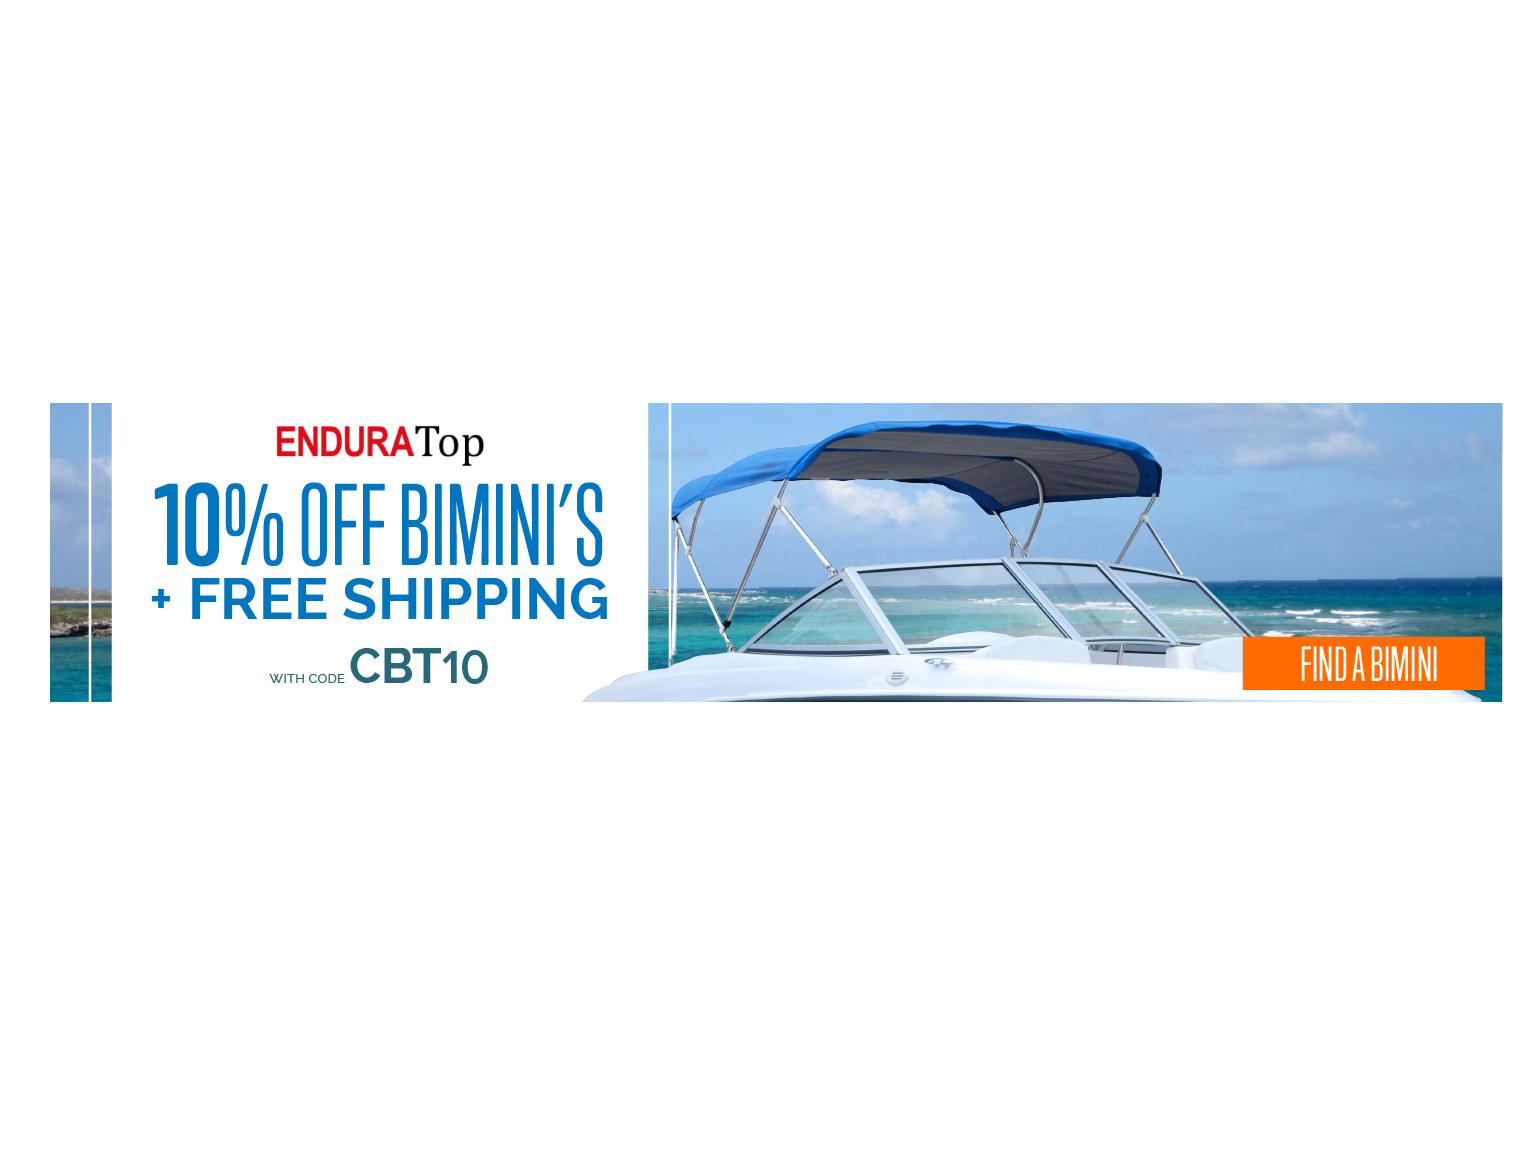 EnduraTop Bimini sale April, 10% off